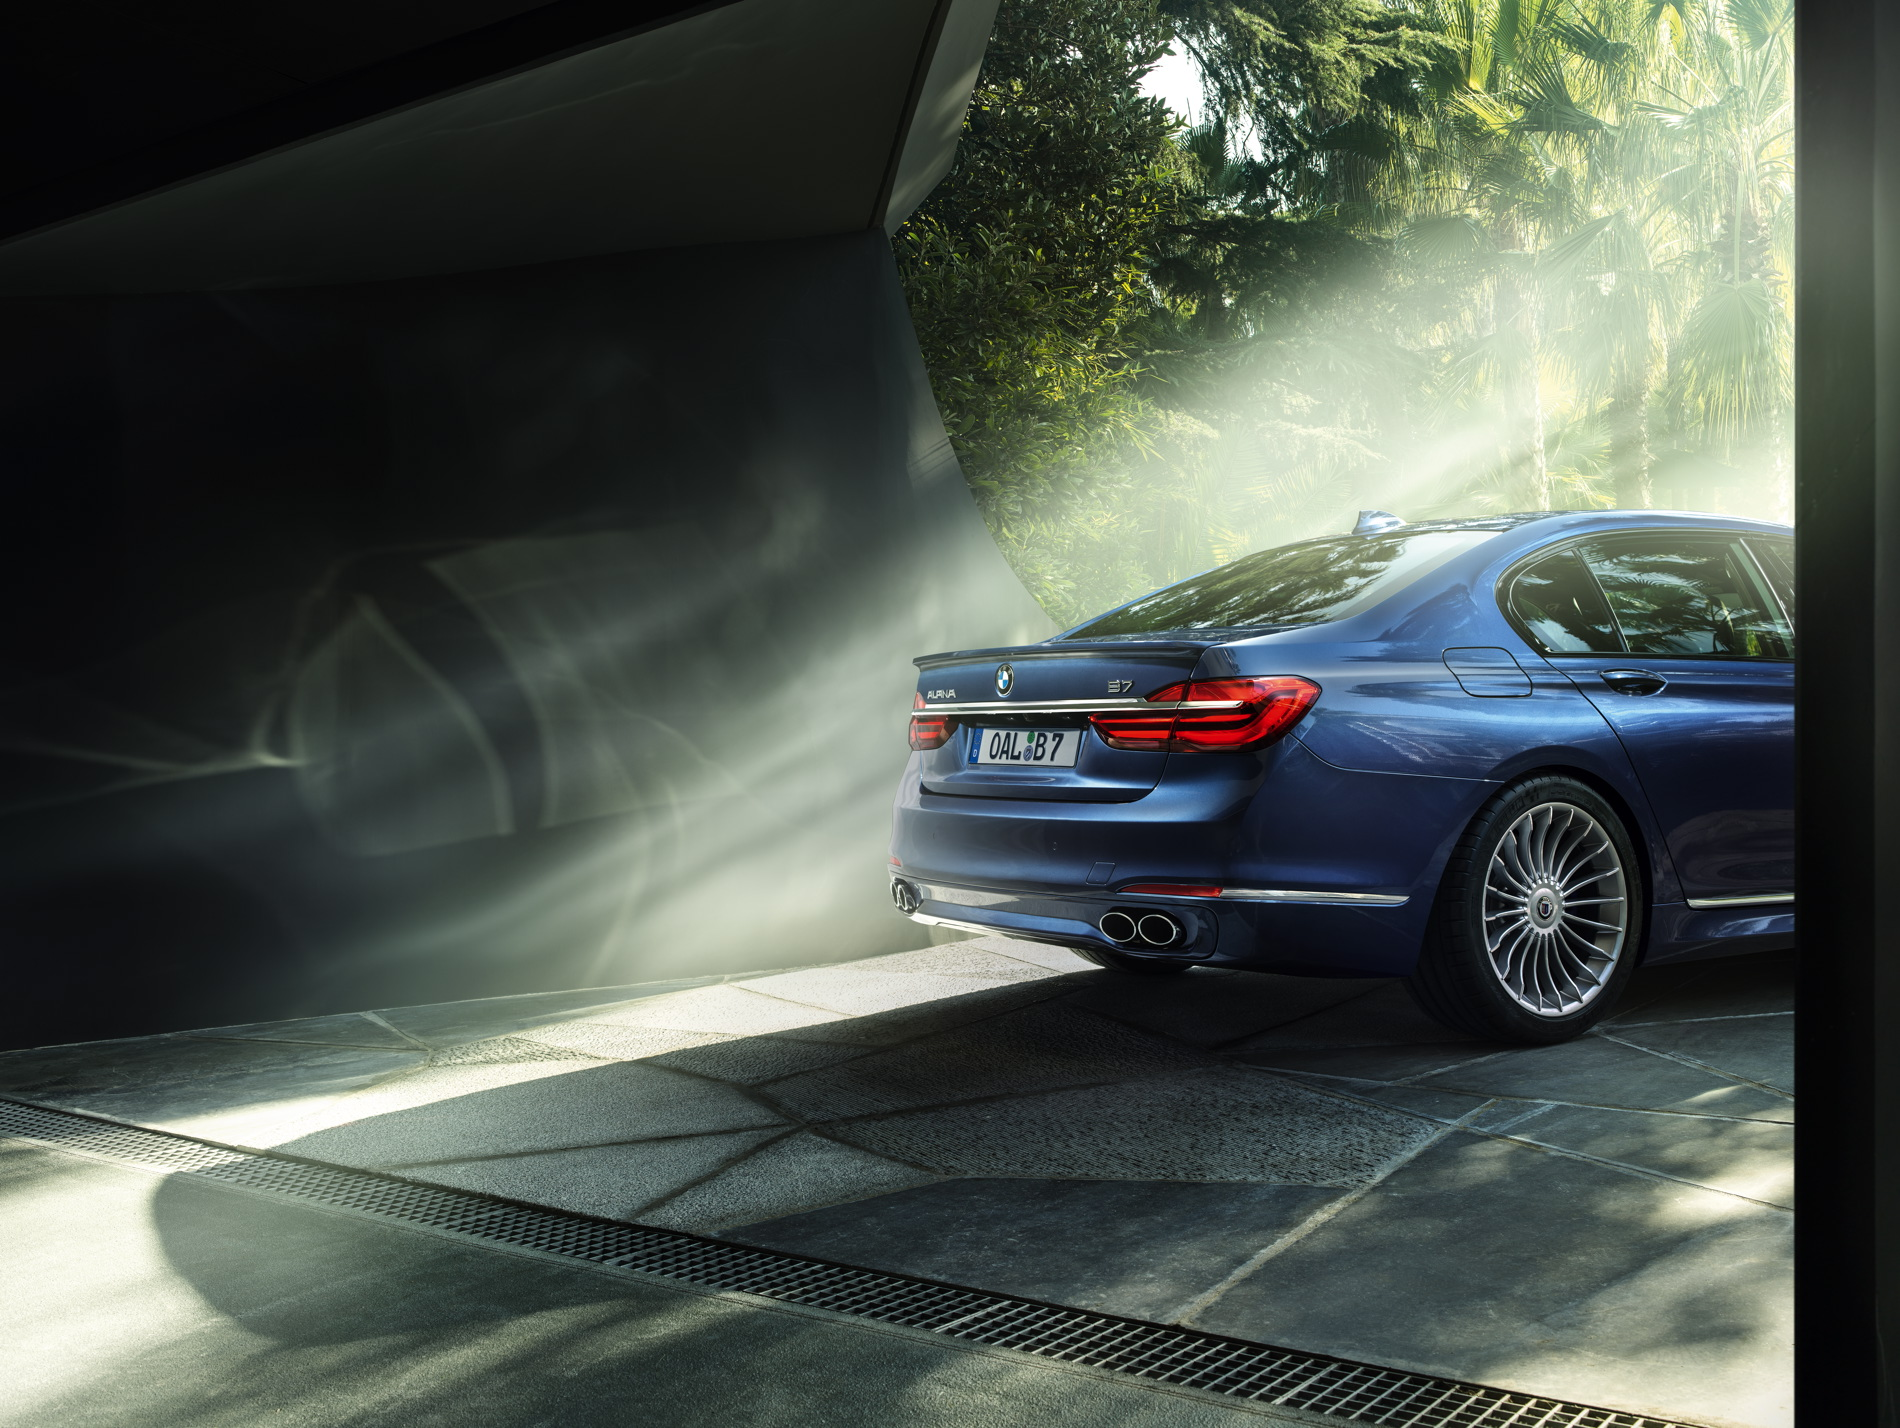 Take A Look About 2016 Bmw Alpina B7 with Mesmerizing Gallery